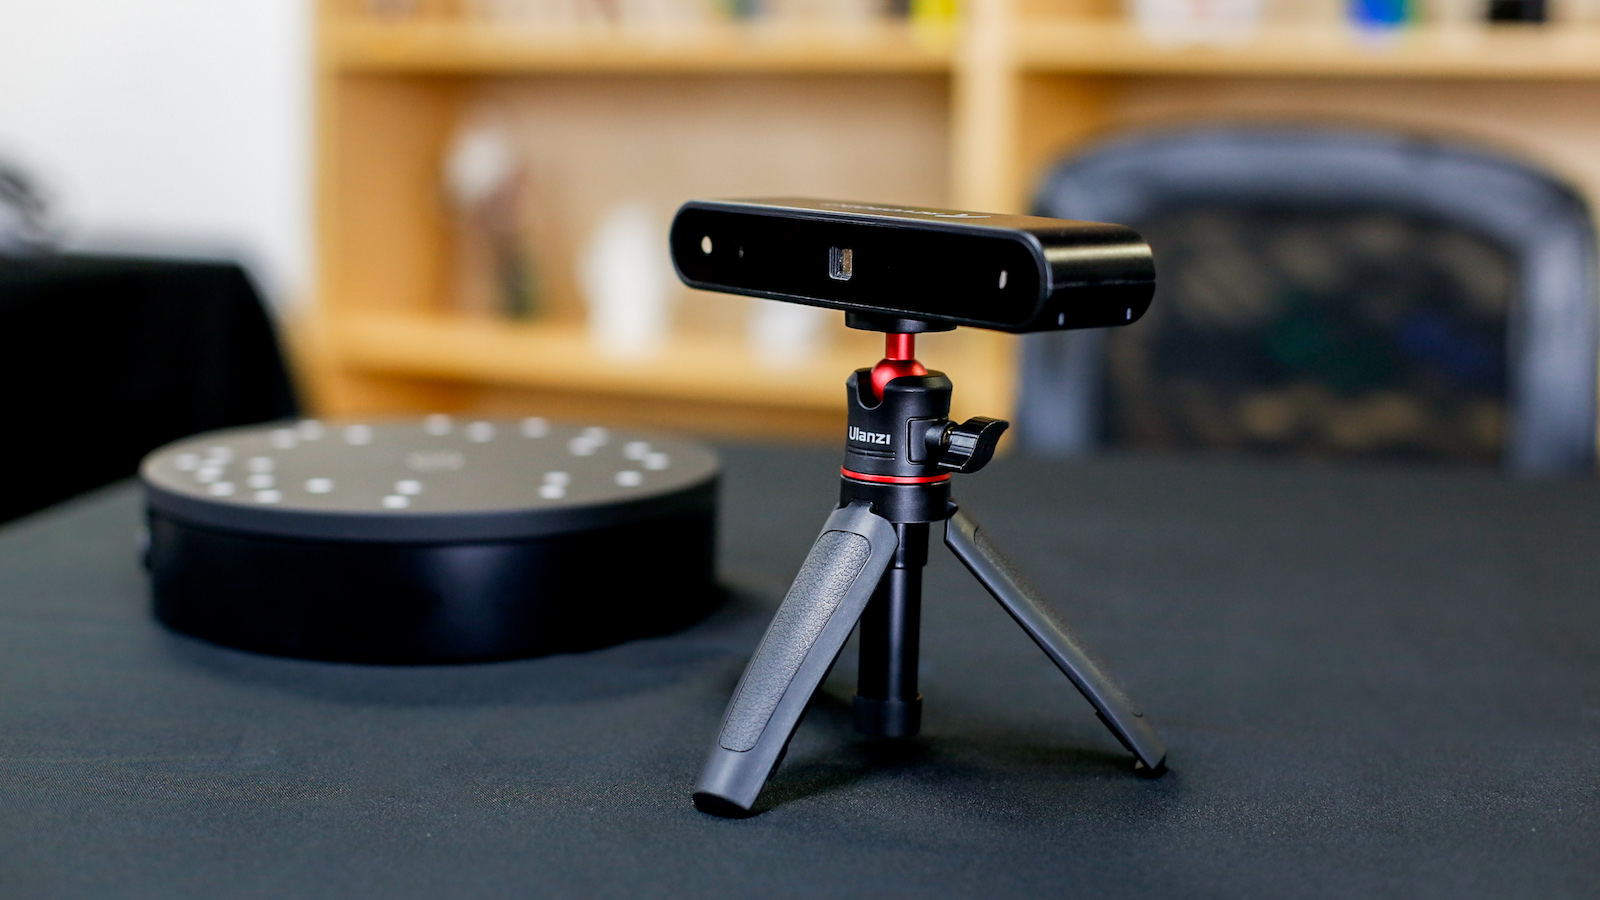 Revopoint POP 3D Scanner performs high-precision scanning for 3D printing